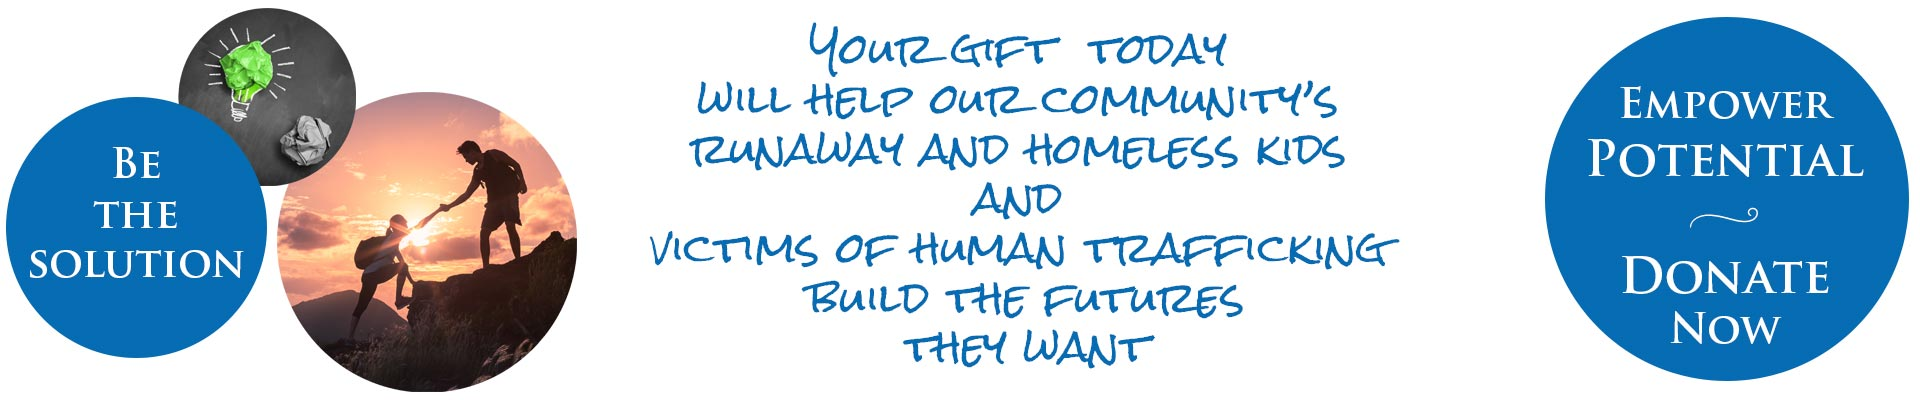 Support programs for runaway and homeless youth and victims of human trafficking